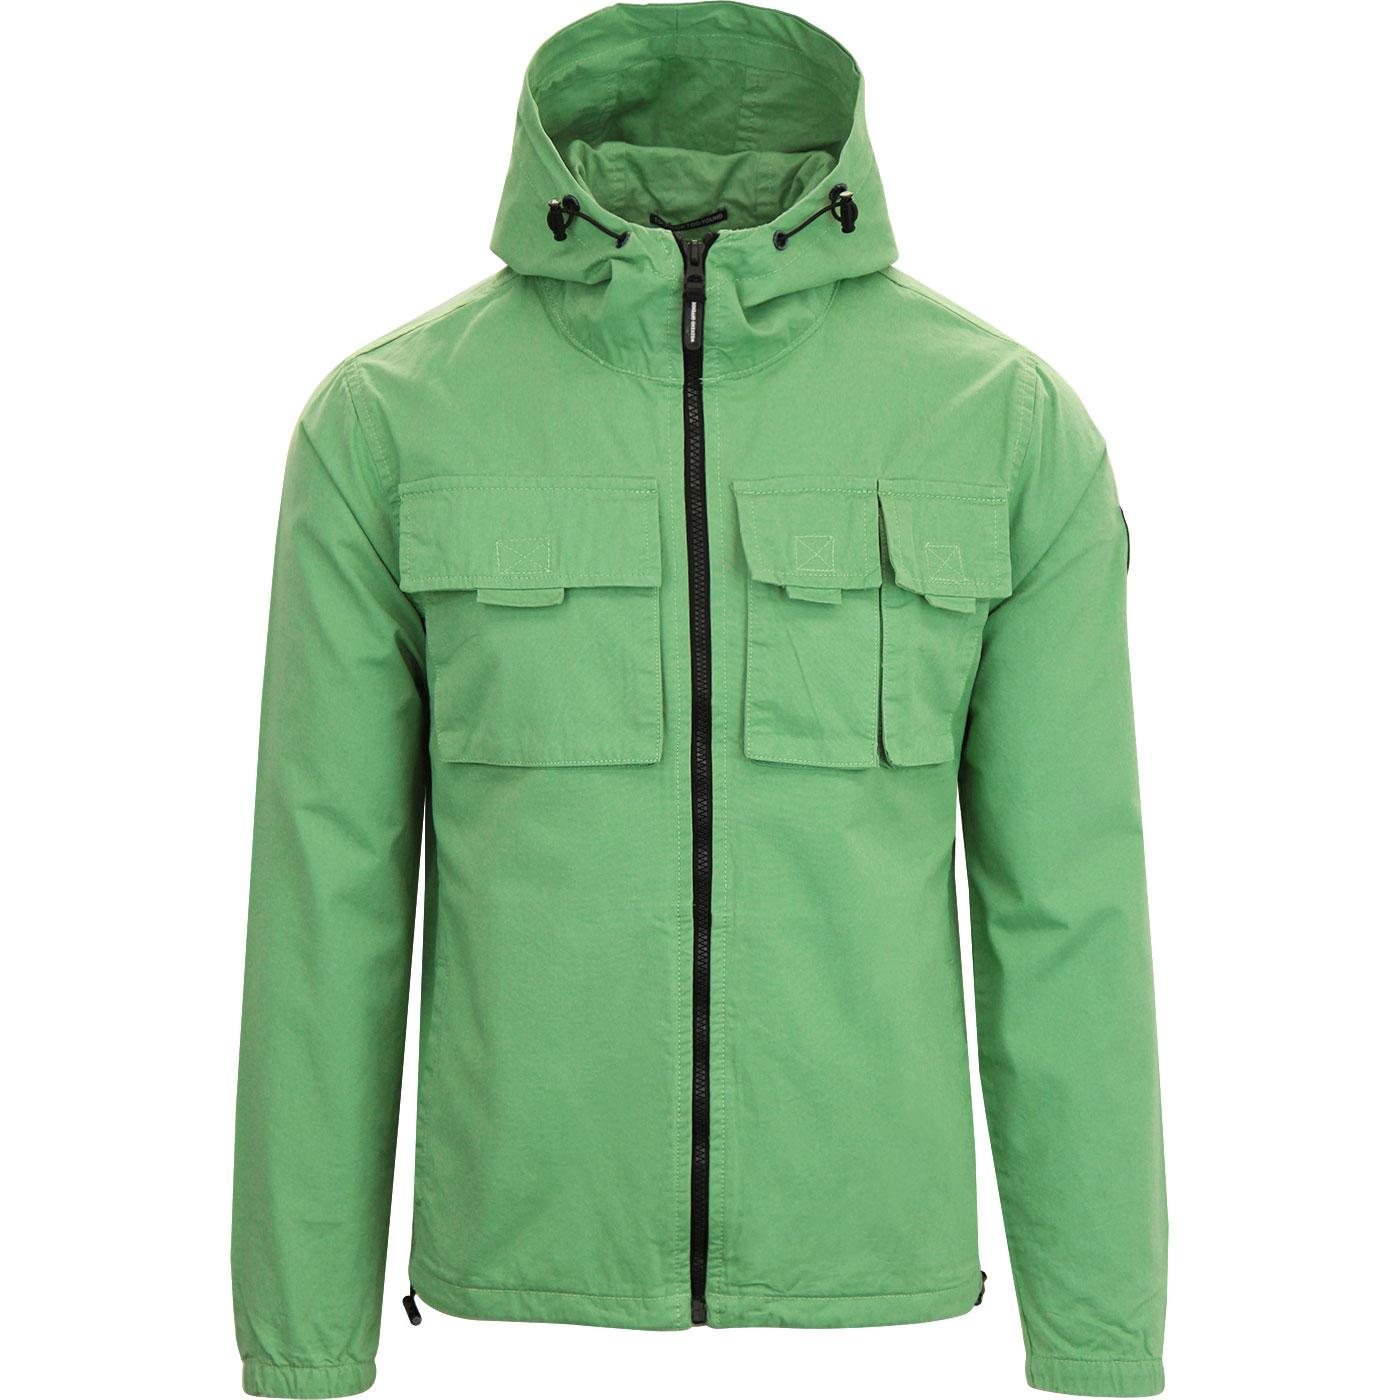 Cardillo WEEKEND OFFENDER Retro Hooded Jacket (GT)